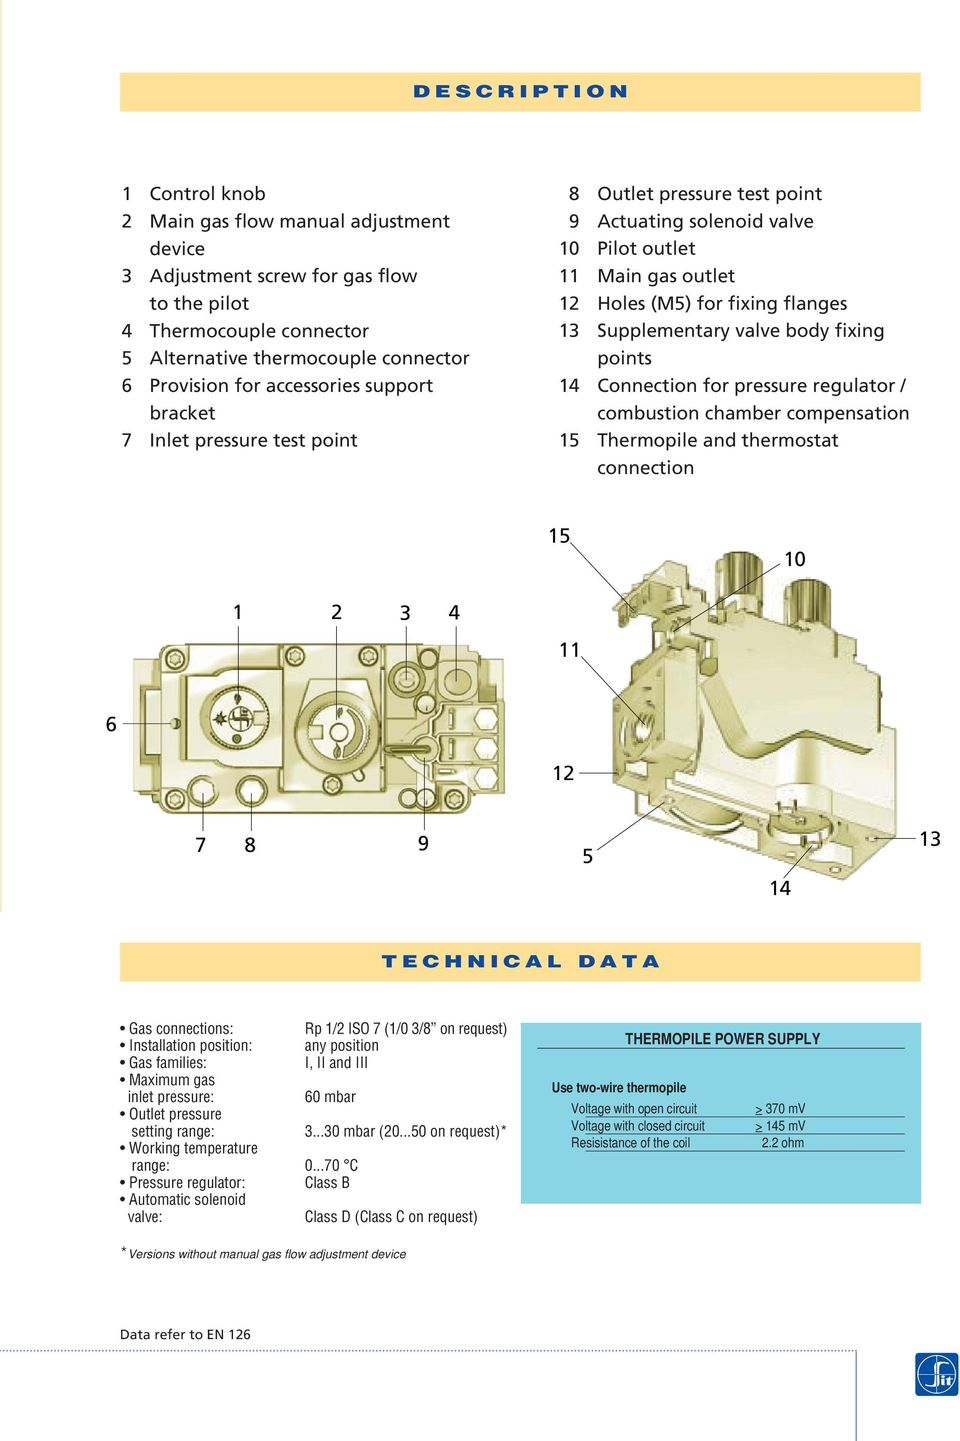 body fixing points 14 Connection for pressure regulator / combustion chamber compensation 15 Thermopile and thermostat connection 15 1 2 3 4 11 7 8 9 5 14 13 TECHNICAL DATA Gas connections: Rp 1/2